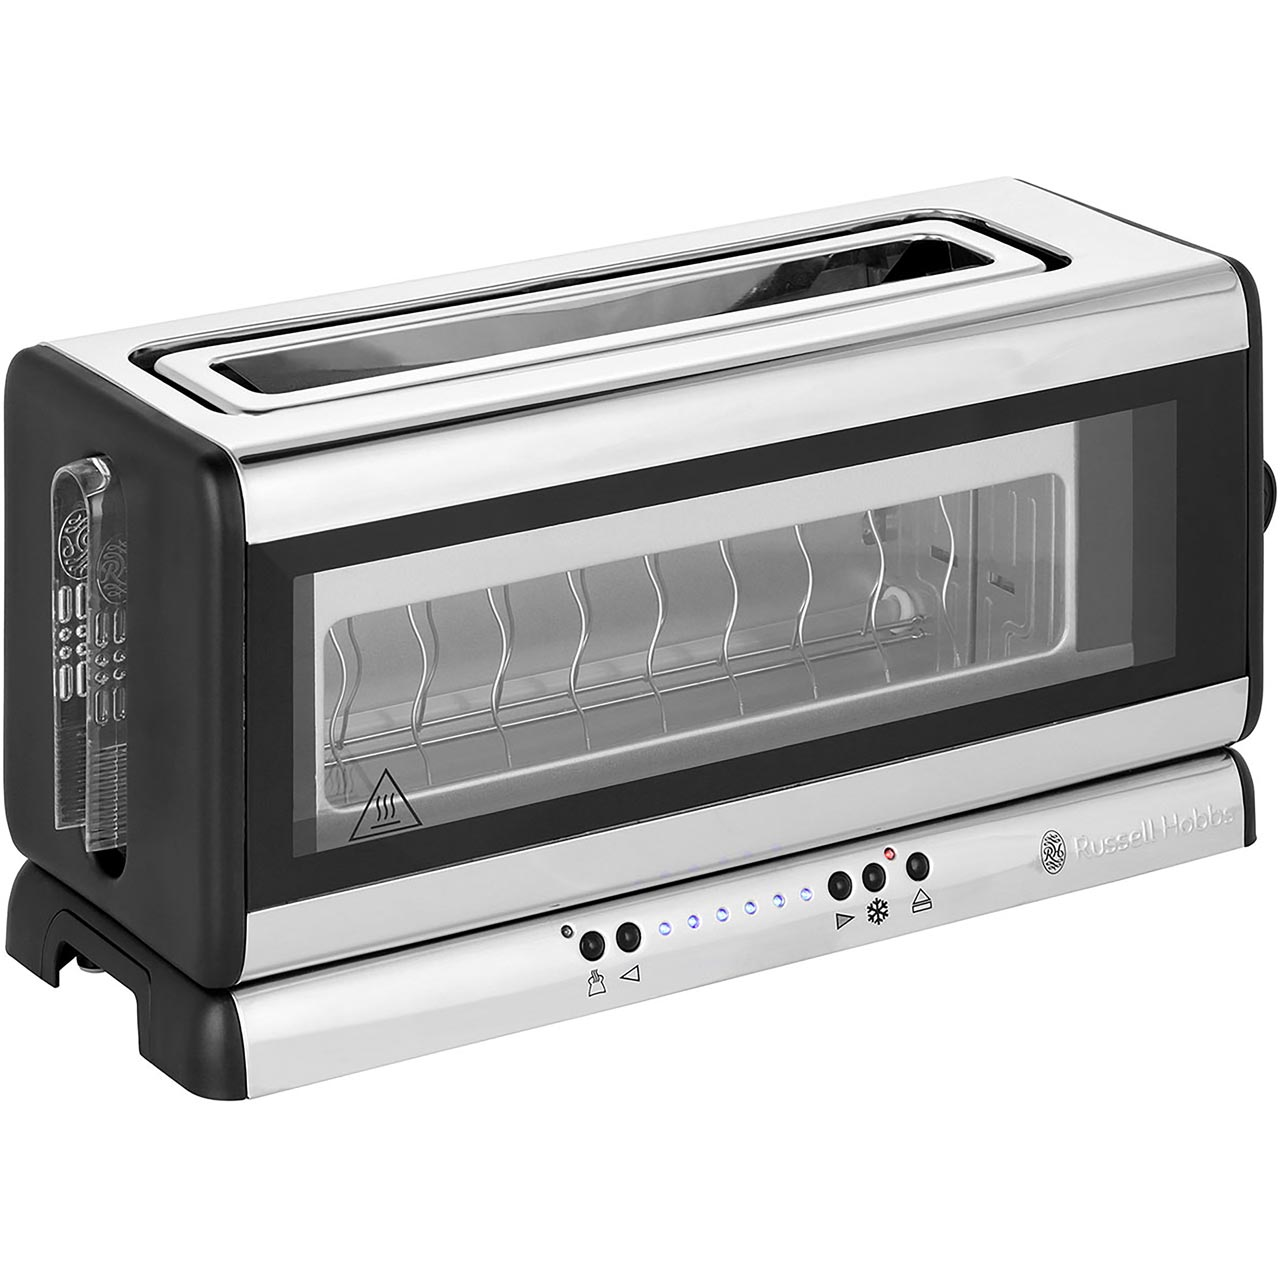 camerich sofa review modern arm covers long slice toasters. graef 4 slot white toaster ...